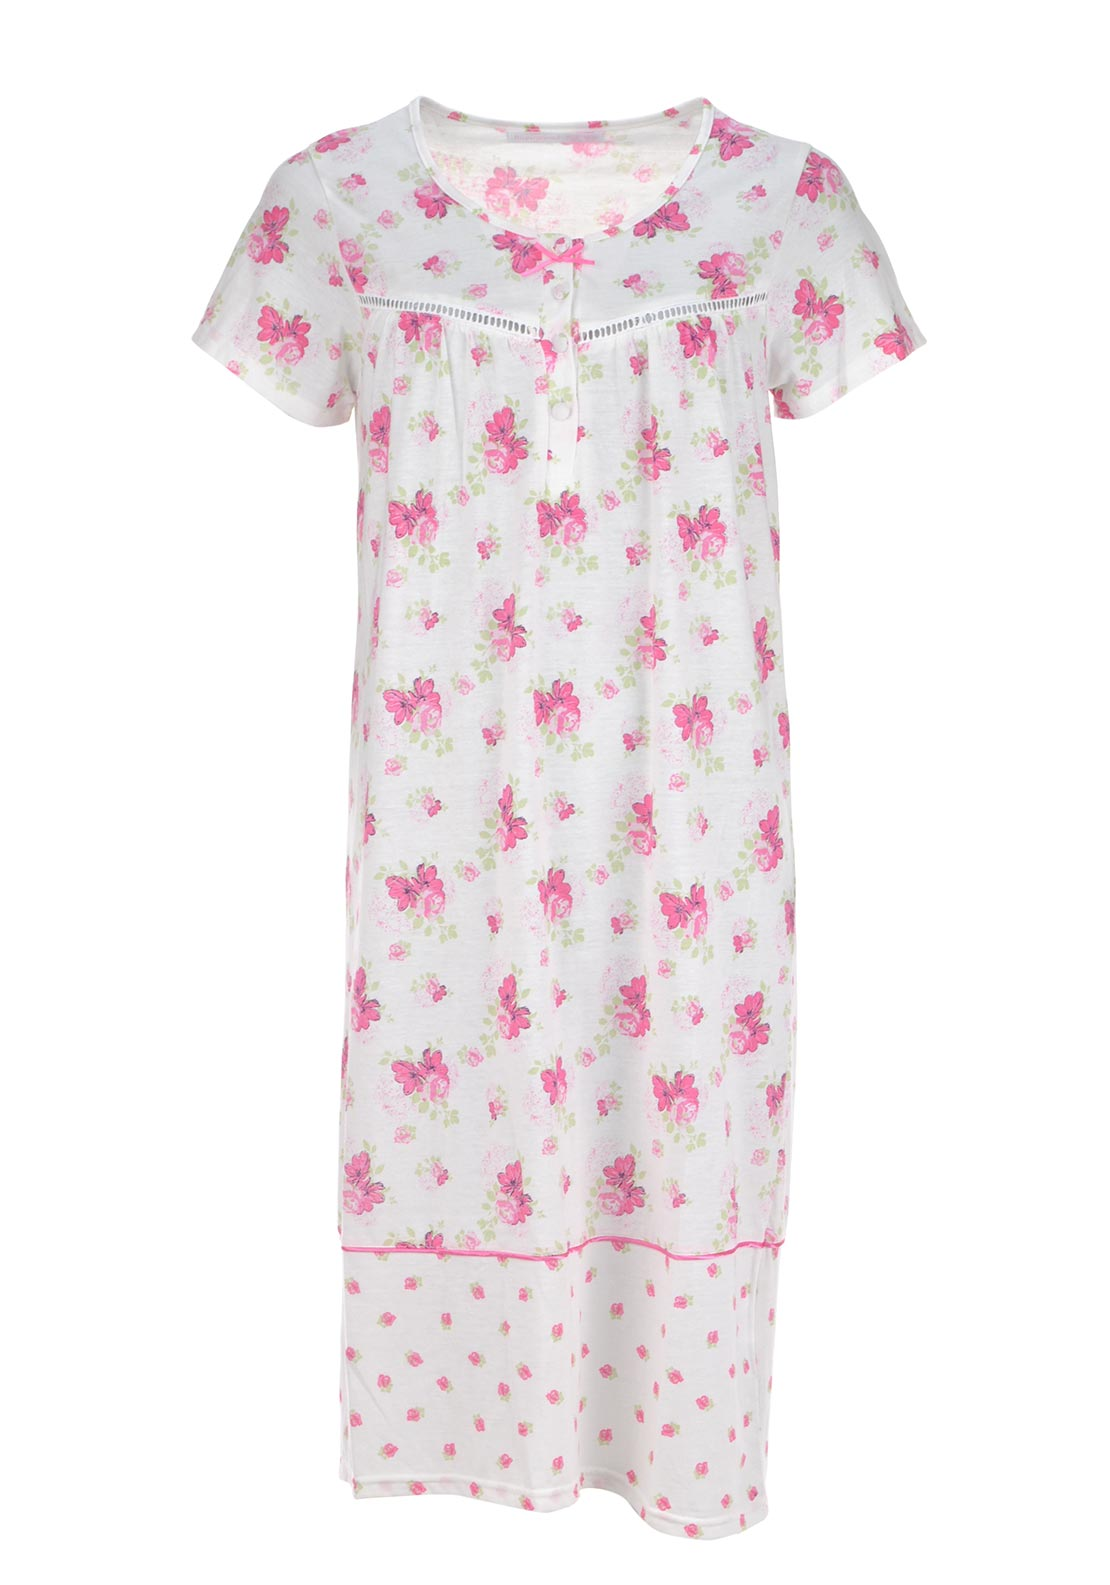 Inspirations Floral Print Short Sleeve Nightdress, Pink and White